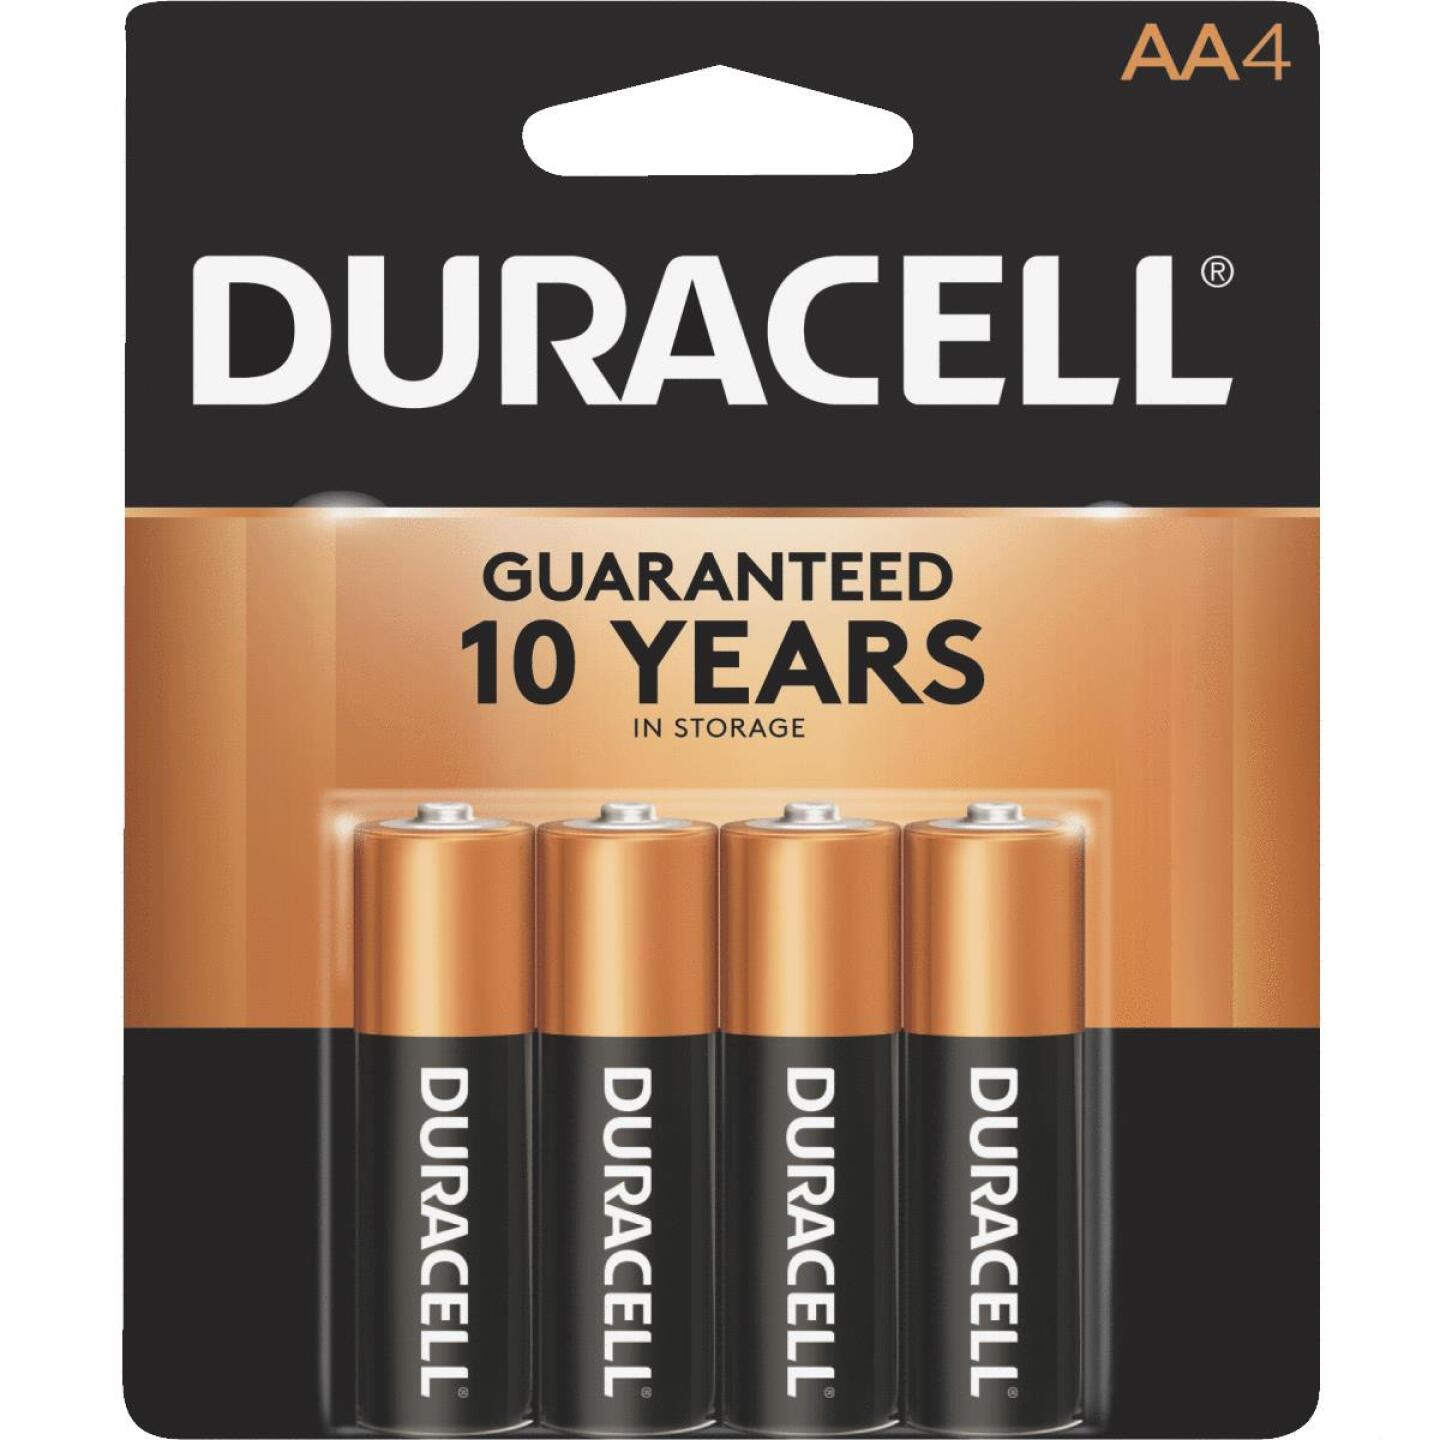 Duracell CopperTop AA Alkaline Battery (4-Pack) Image 1